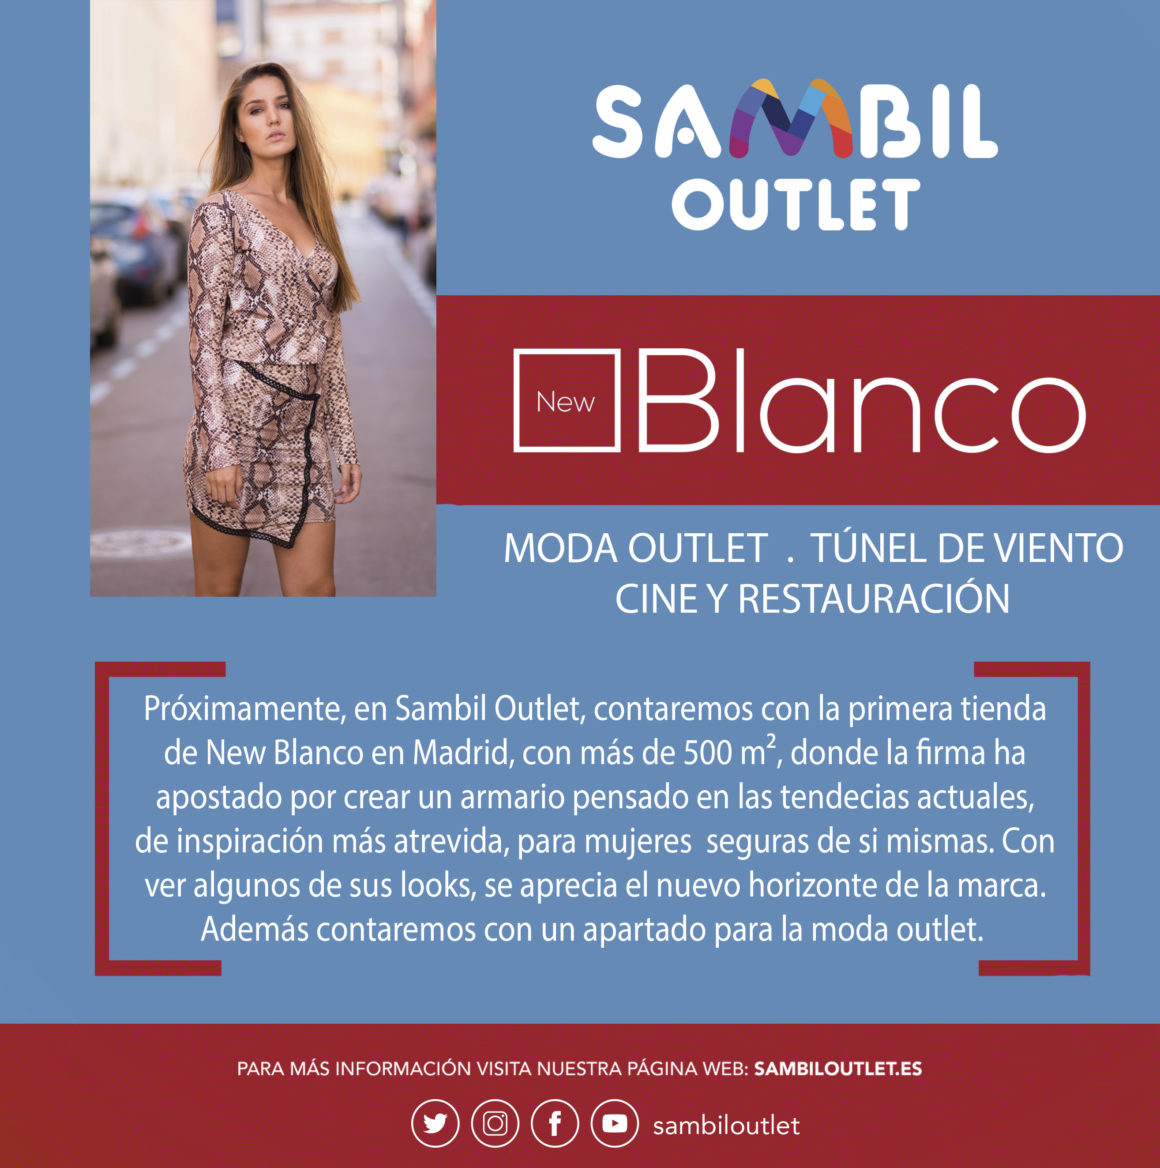 New Blanco llega a Sambil Outlet